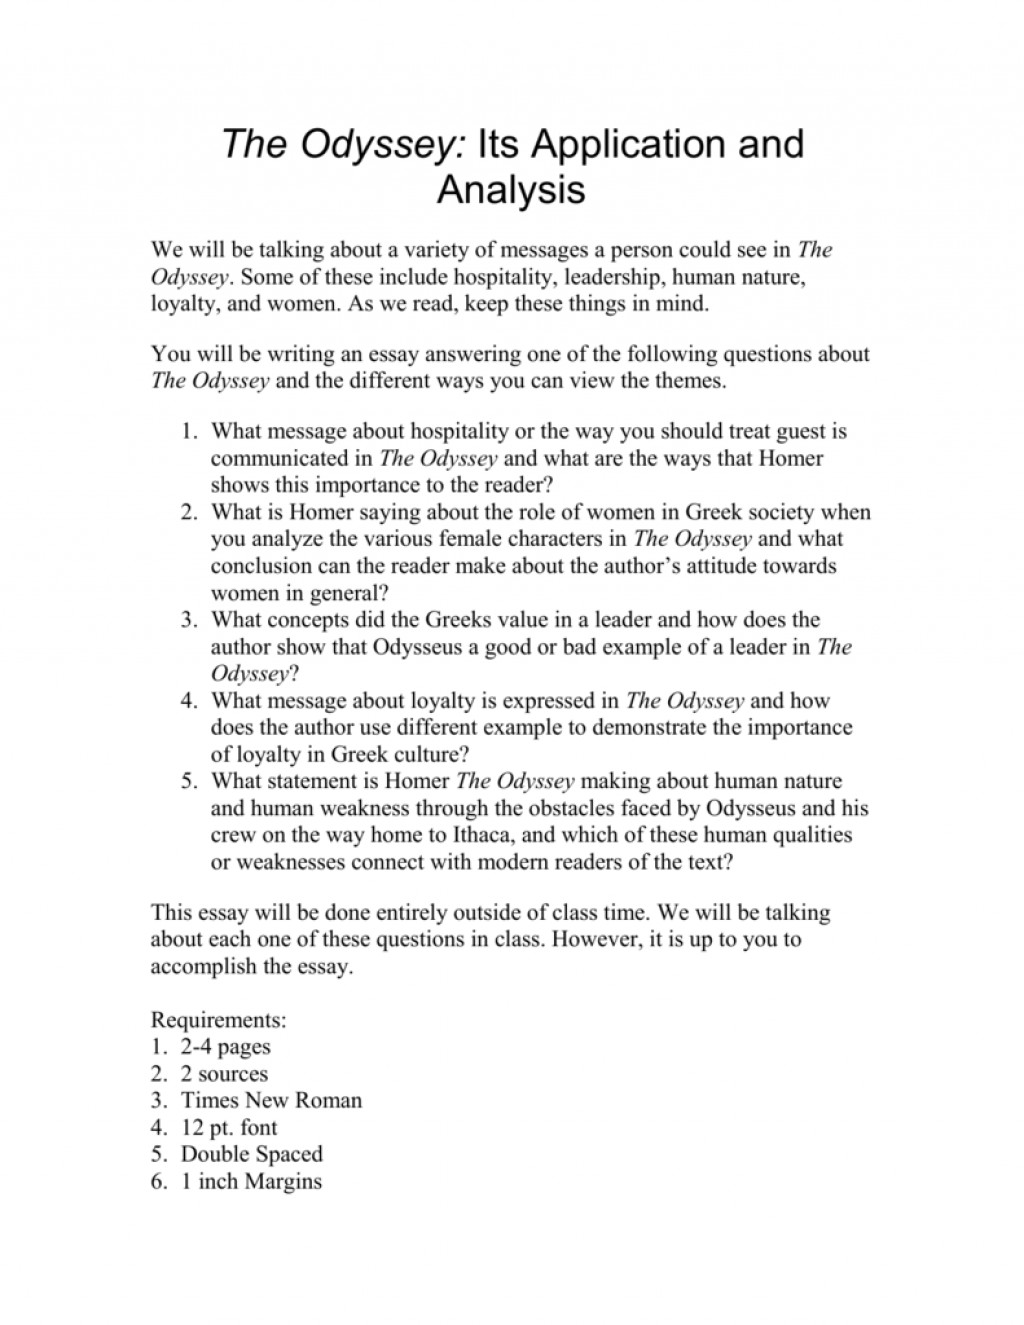 009 Essay Example Odyssey Topics 008004991 1 Amazing Hero Prompt Large